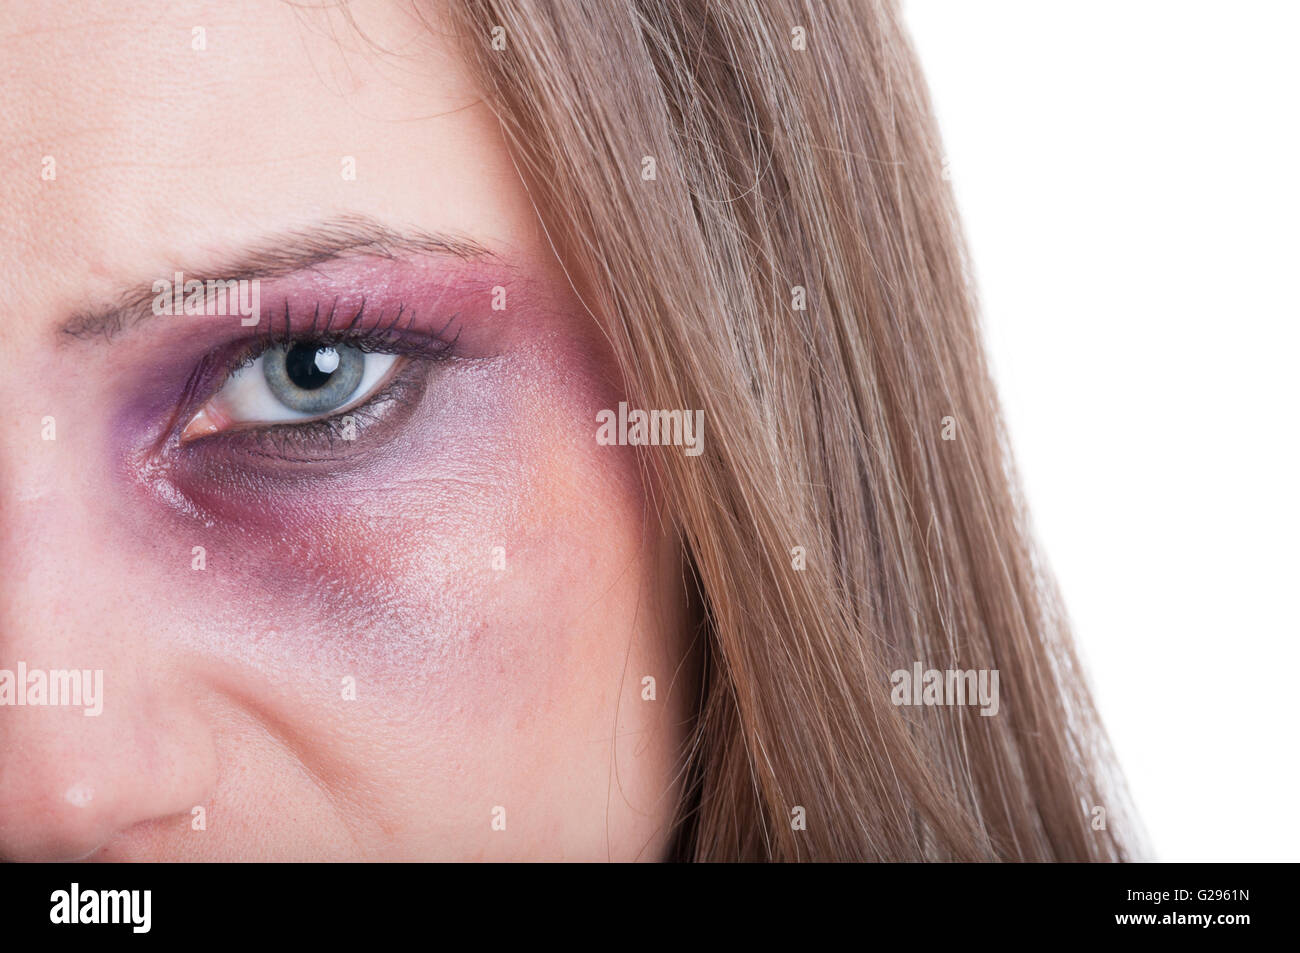 Black or bruised woman eye concept with copy space on whte background - Stock Image